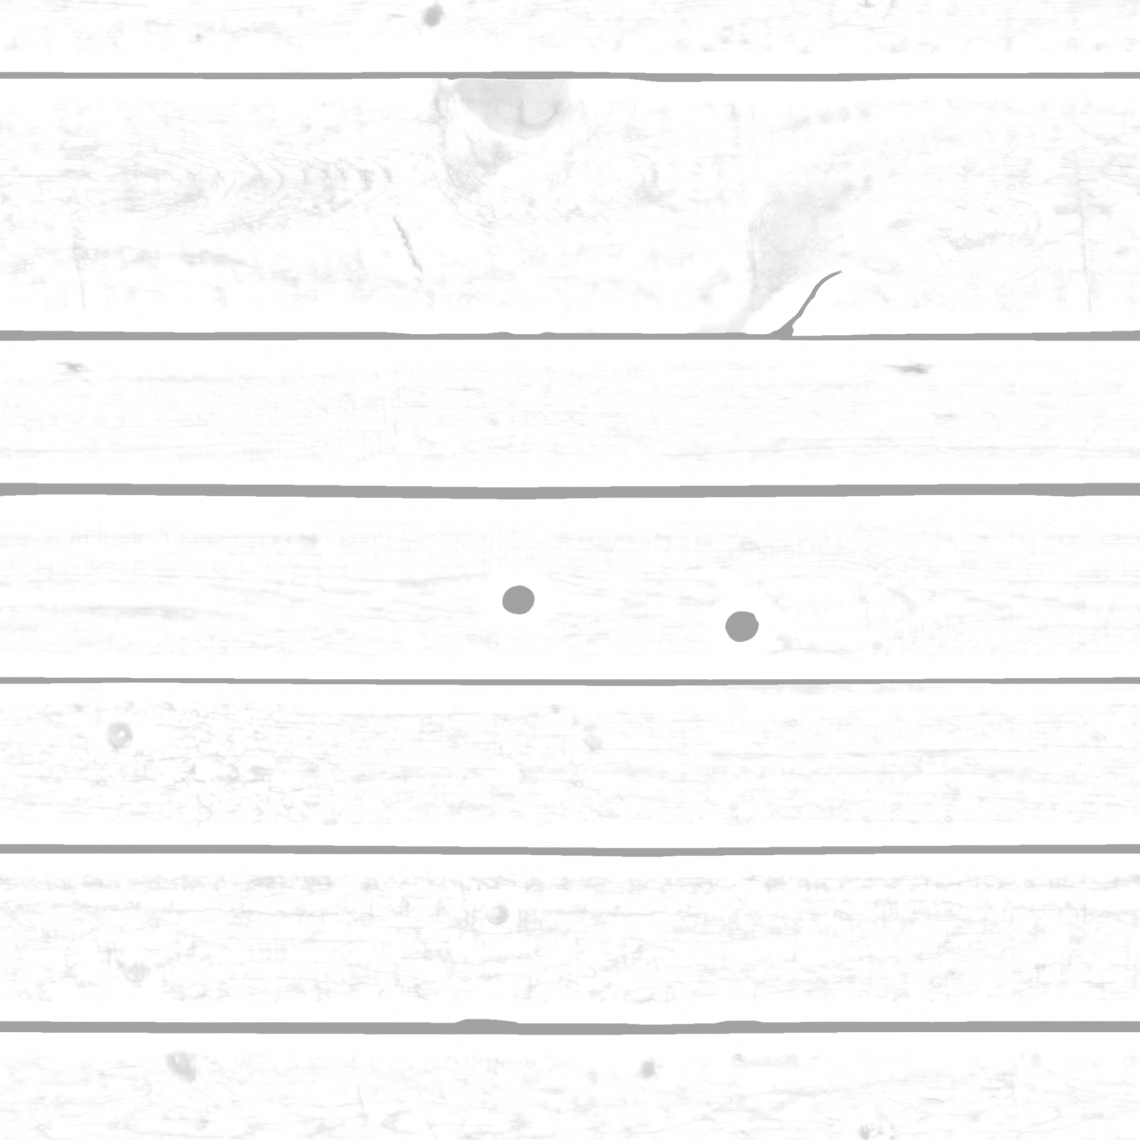 Planks-Wooden-01-Ambient-Occlusion